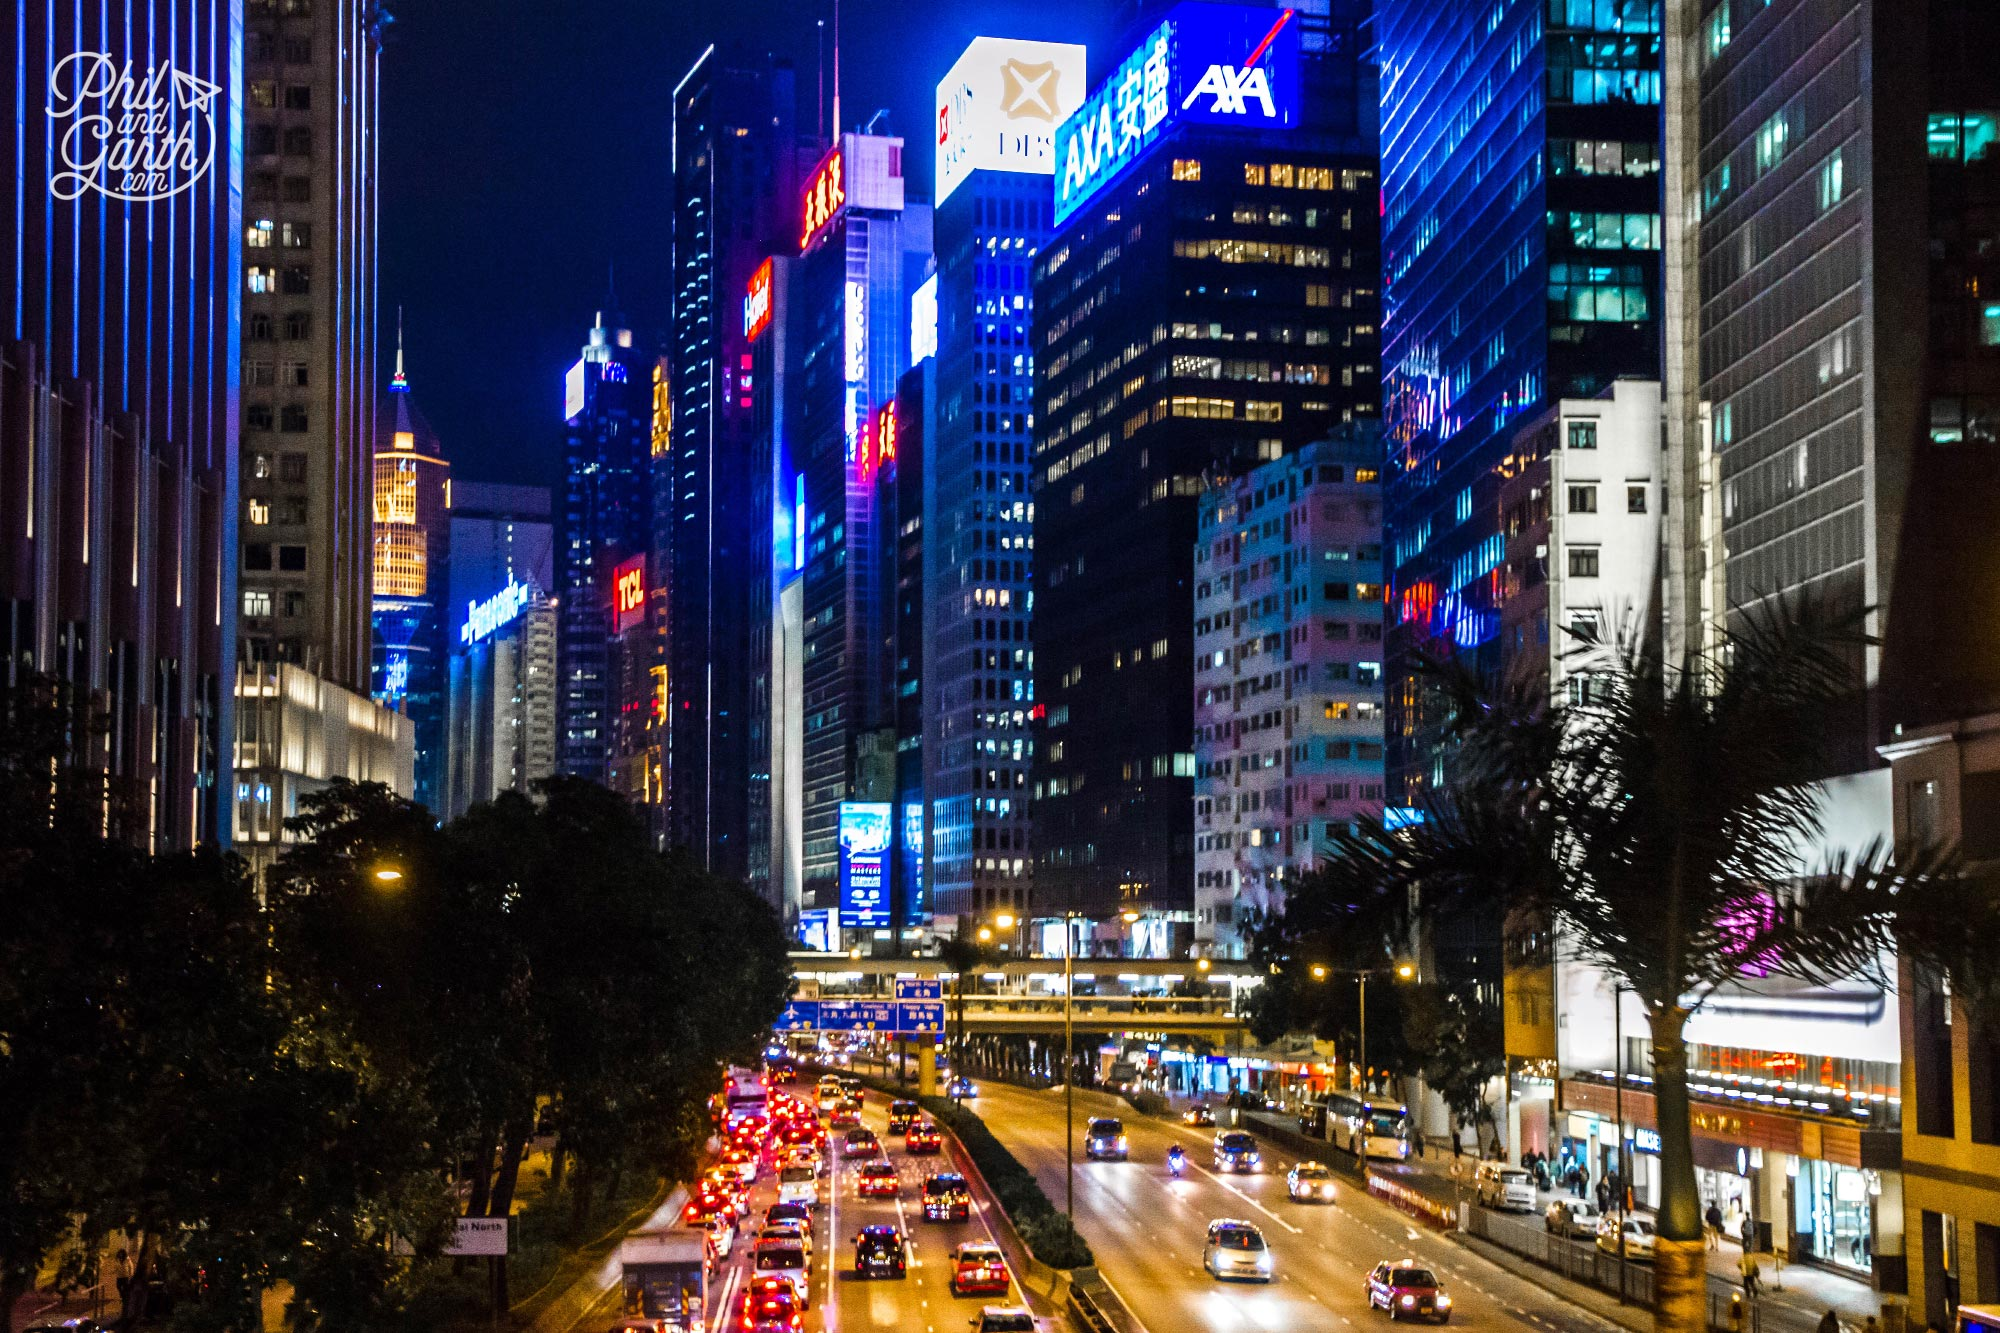 Gigantic neon and LED screens light up streets and buildings